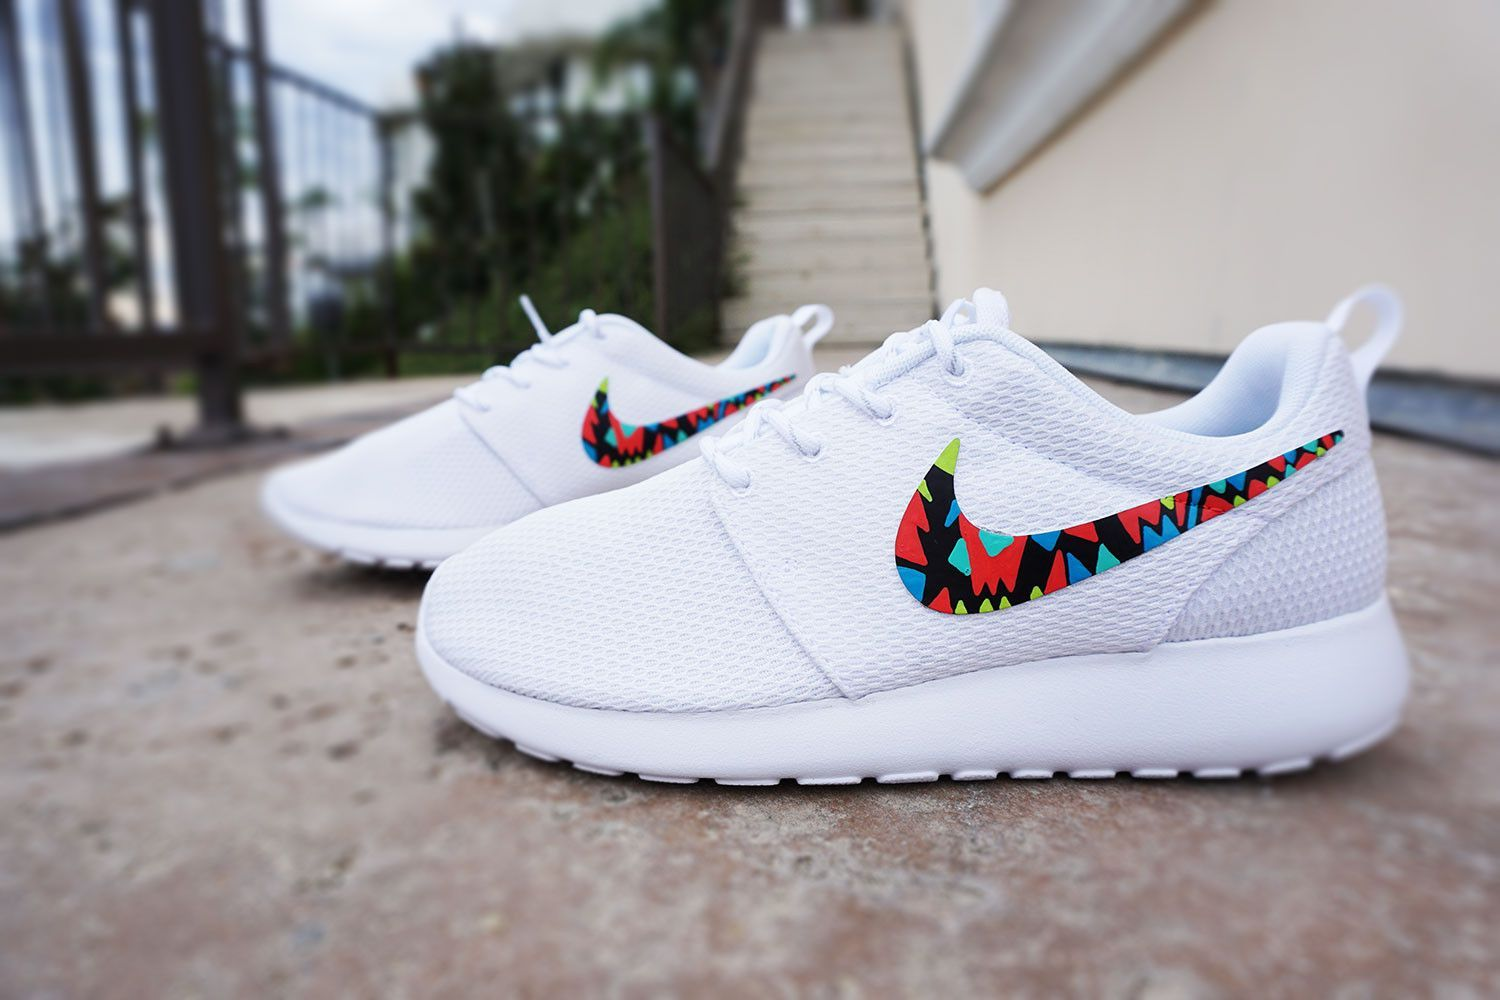 42b8ddf89 Womens Custom Nike Roshe Run sneakers